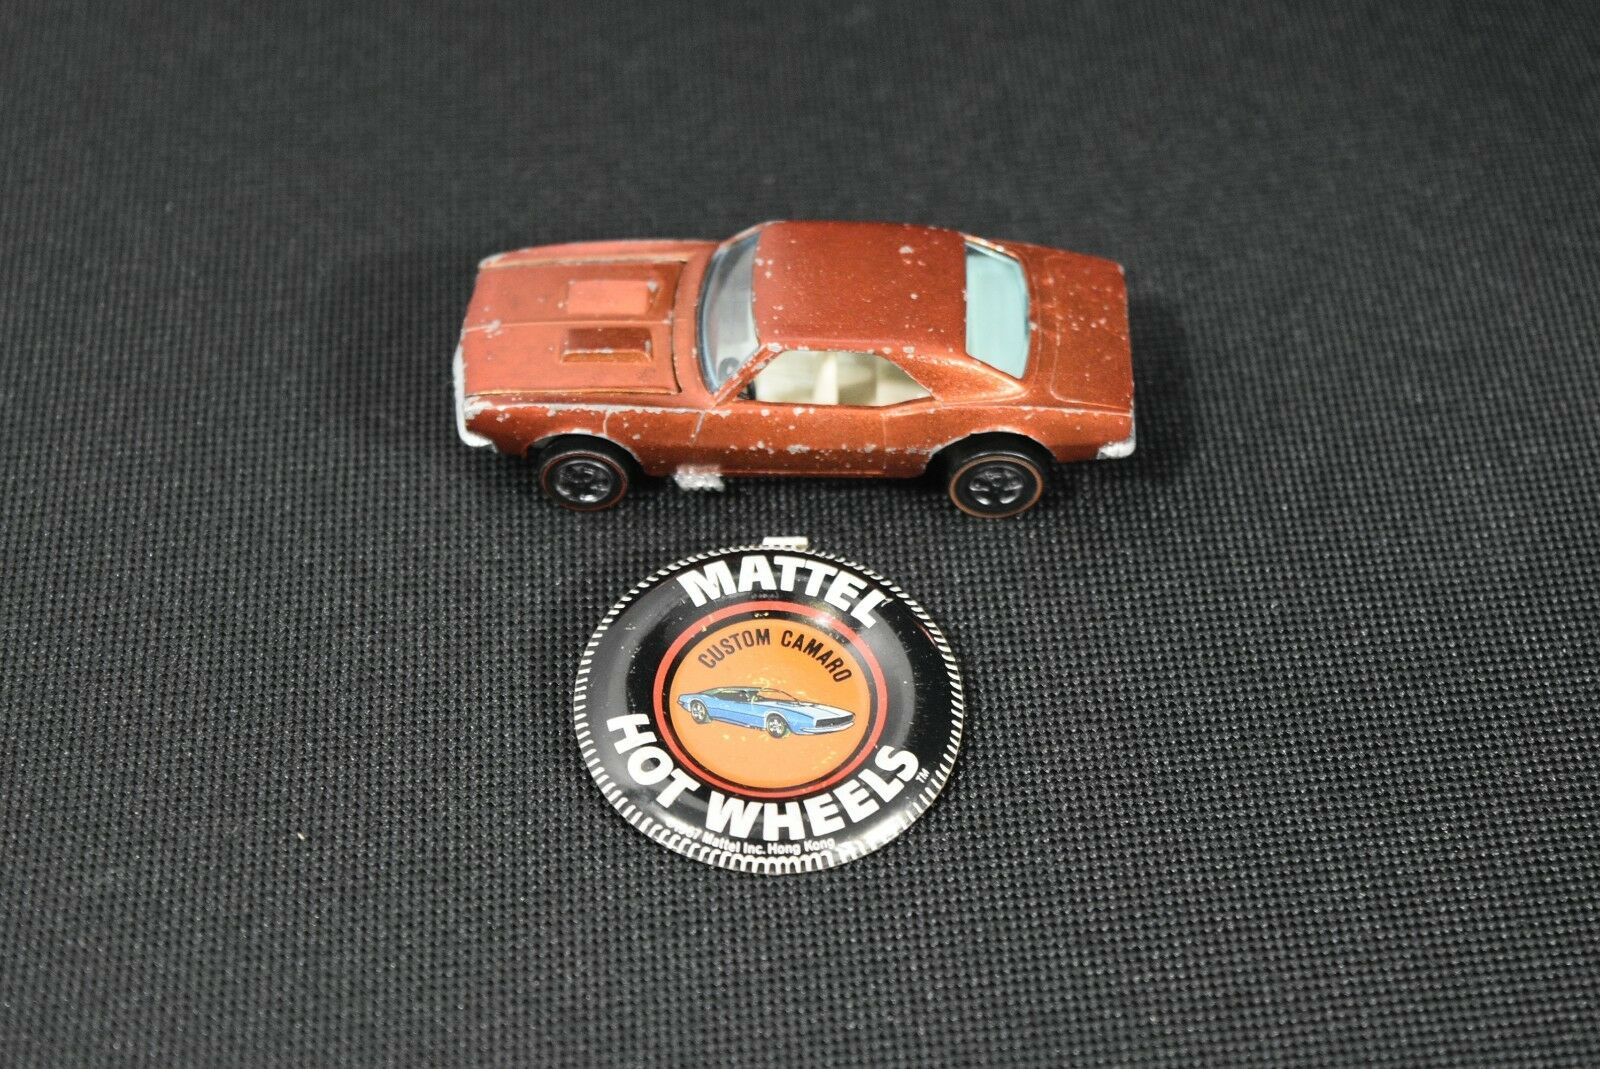 Original 1967 Hot Wheels rossoline Custom Camaro in arancia color with Button